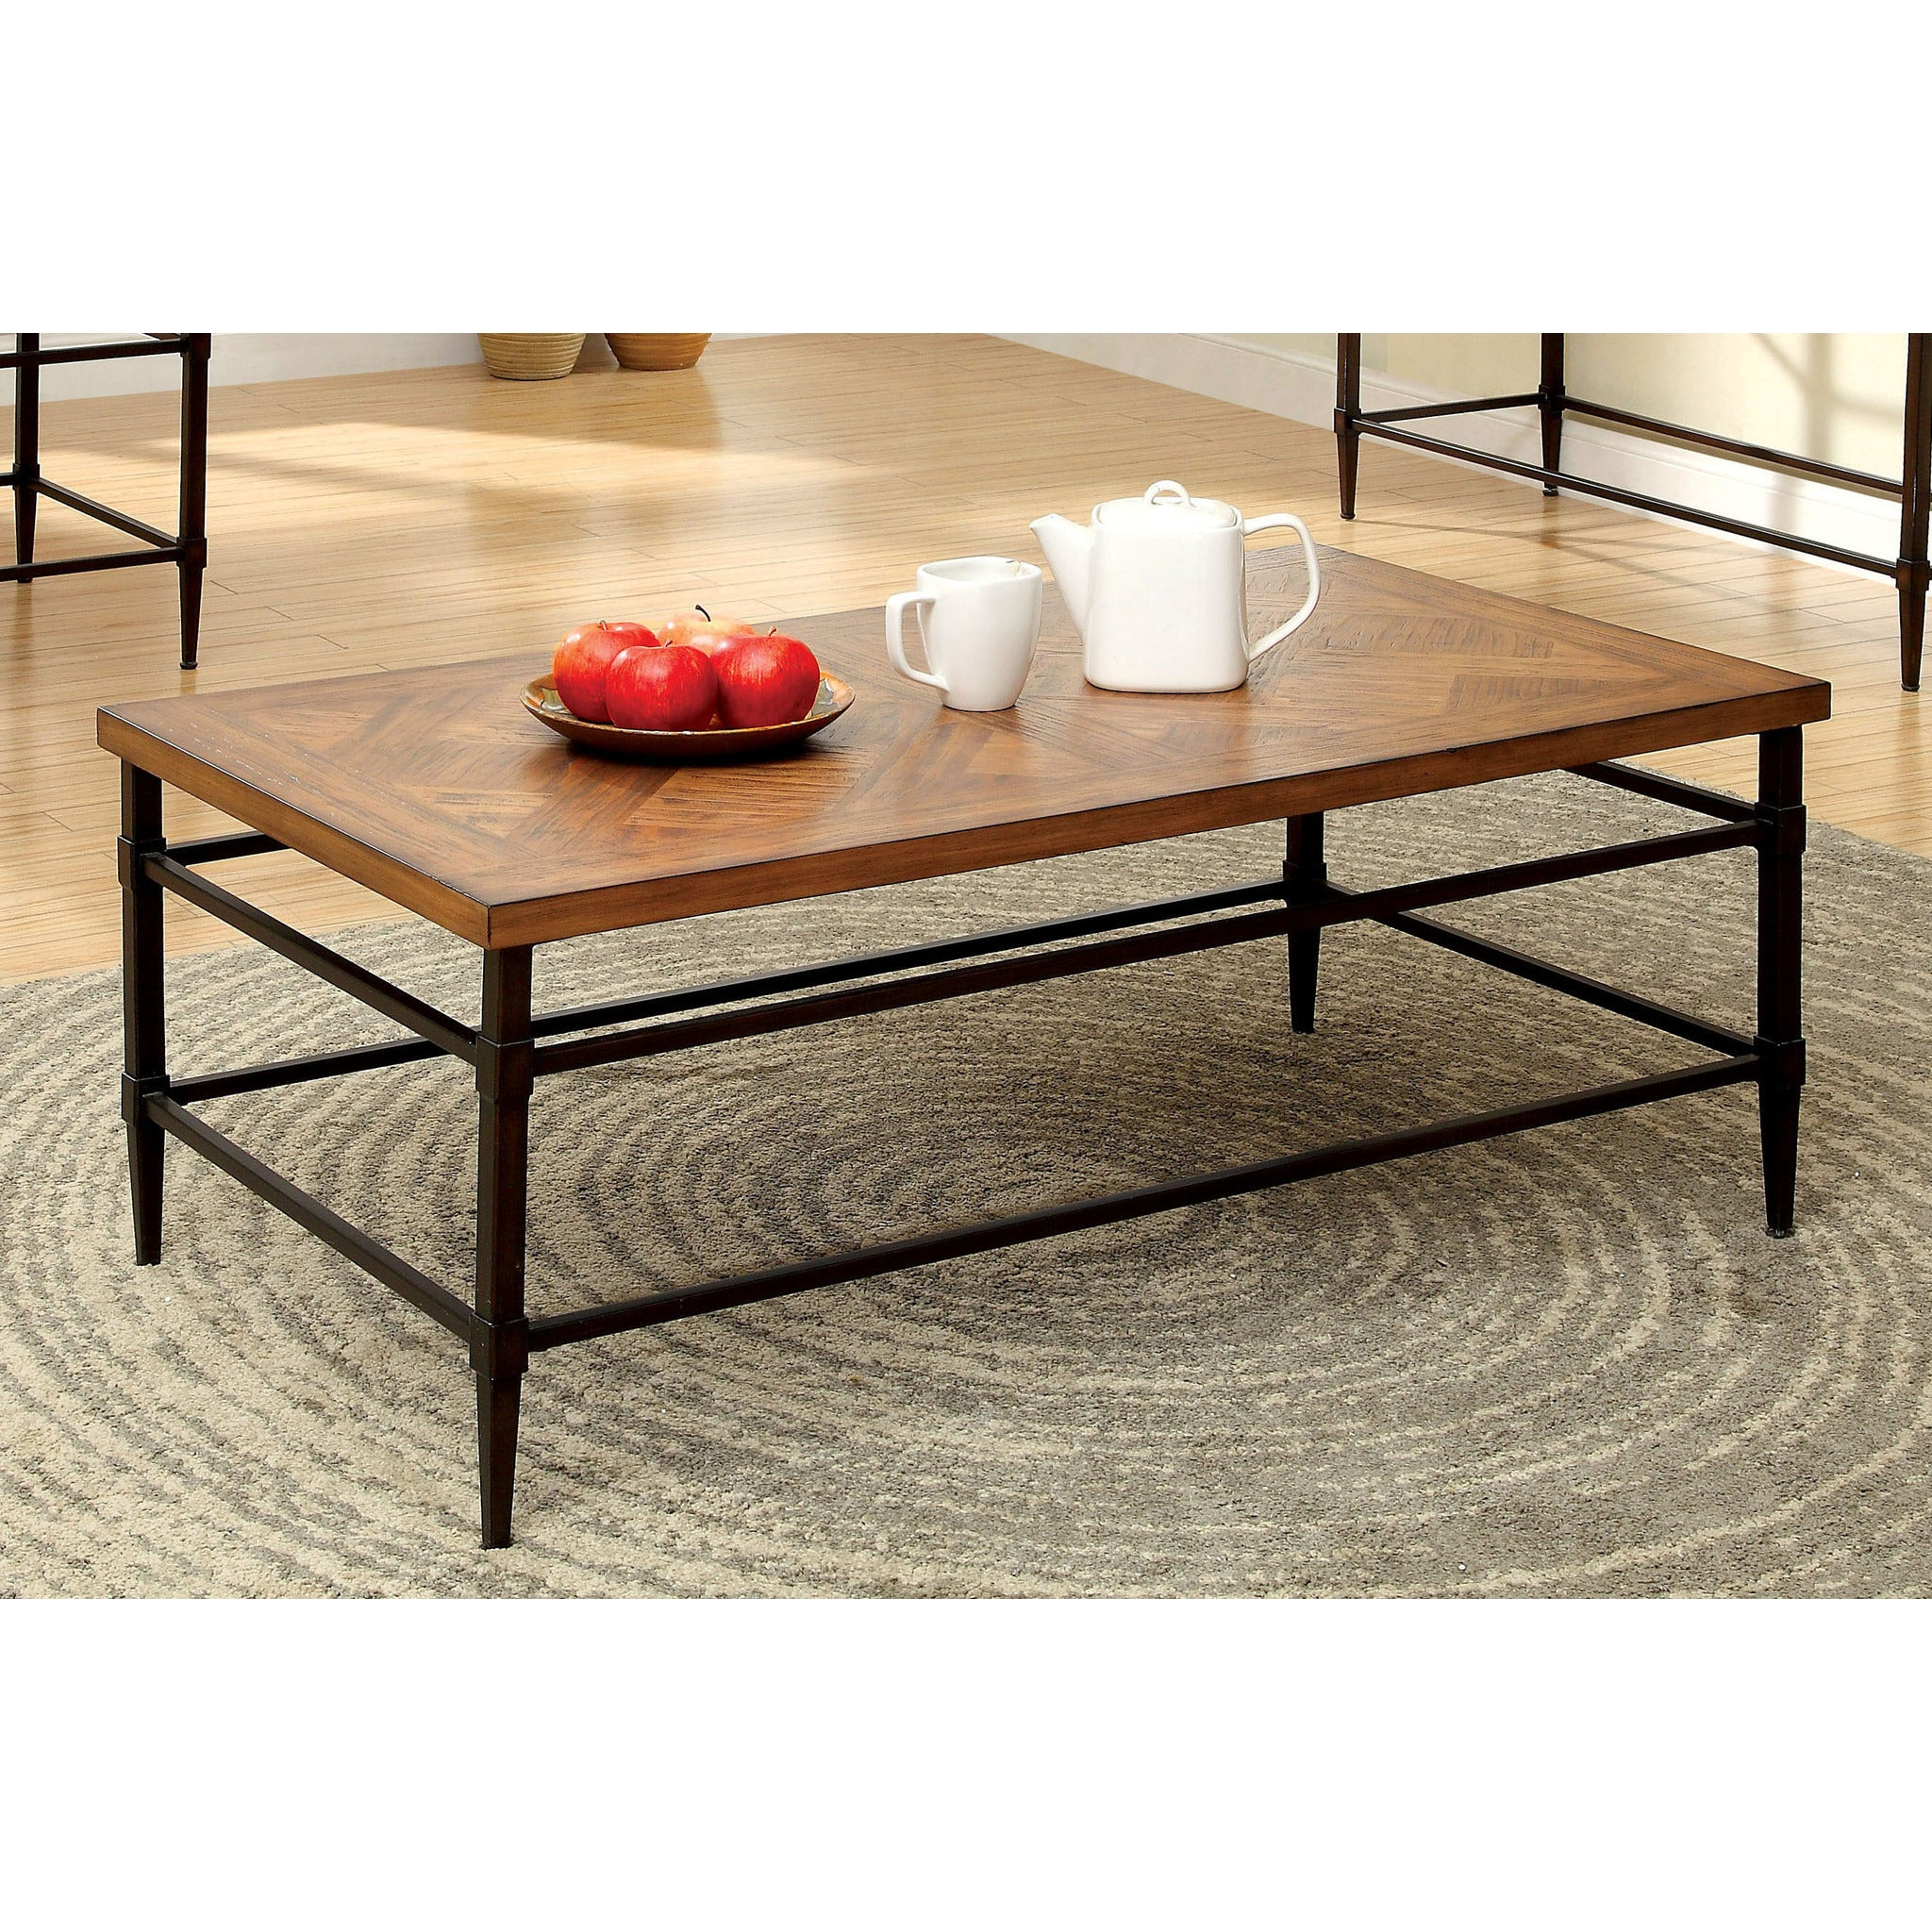 Suk Transitional Two Tone Coffee Table in Light Oak and Black EMFURN